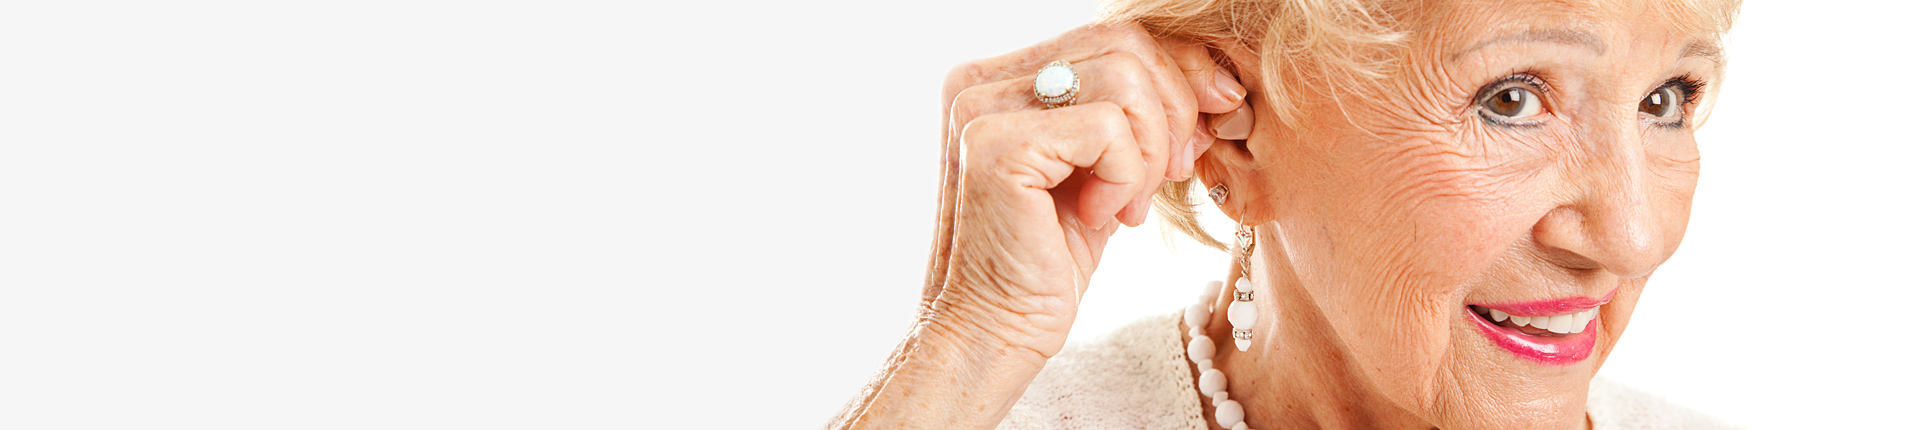 hearing-problems-elderly